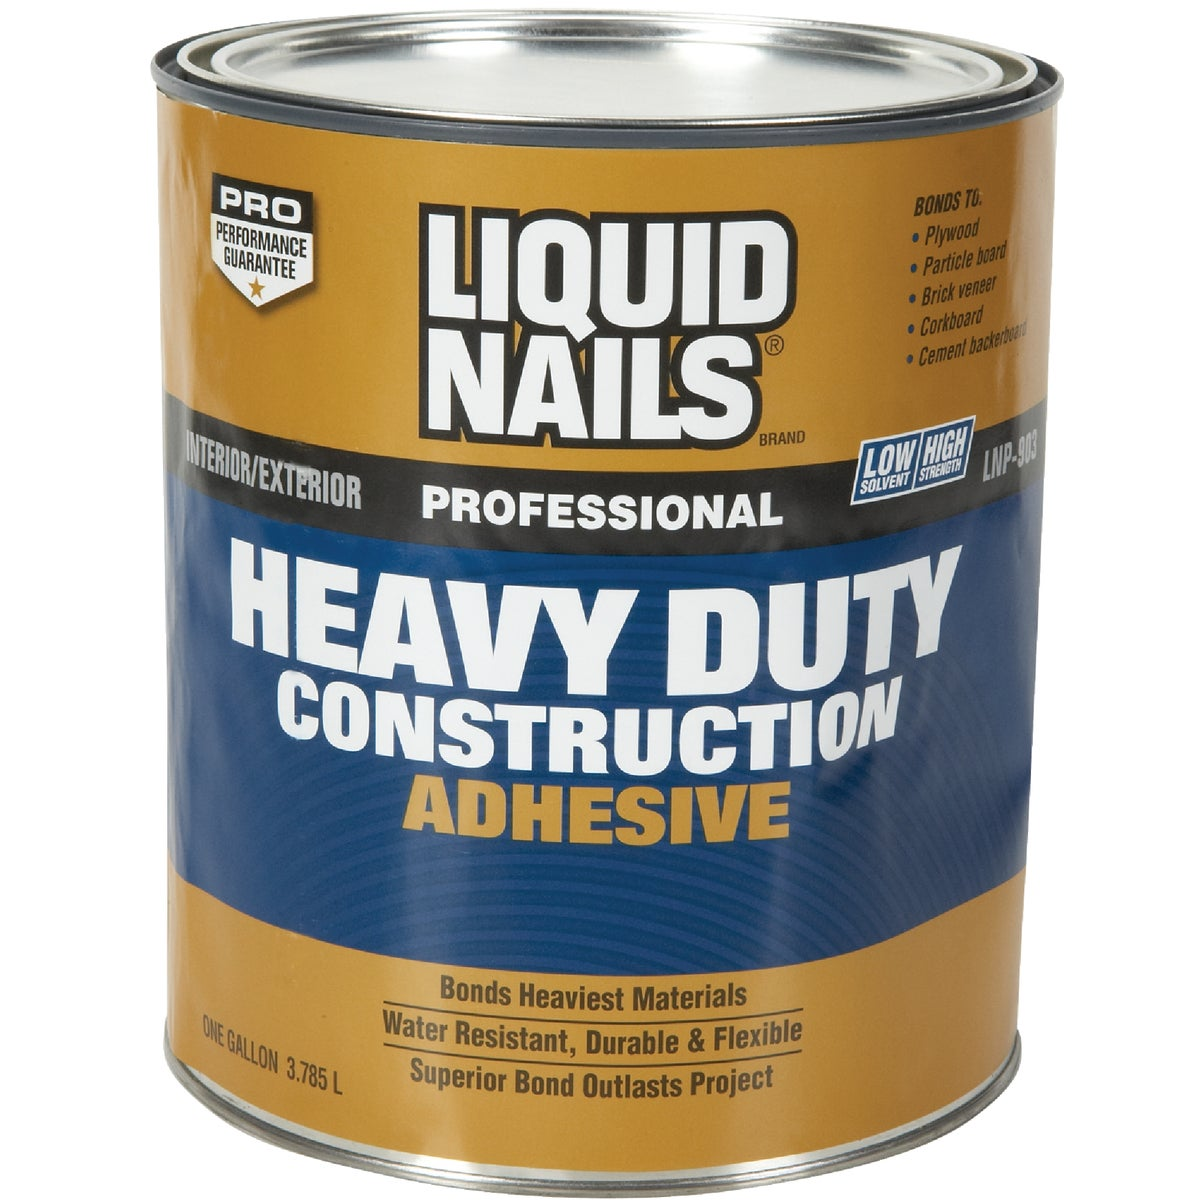 GAL H/D CONST ADHESIVE - LNP903 by Liquid Nails/akzonob